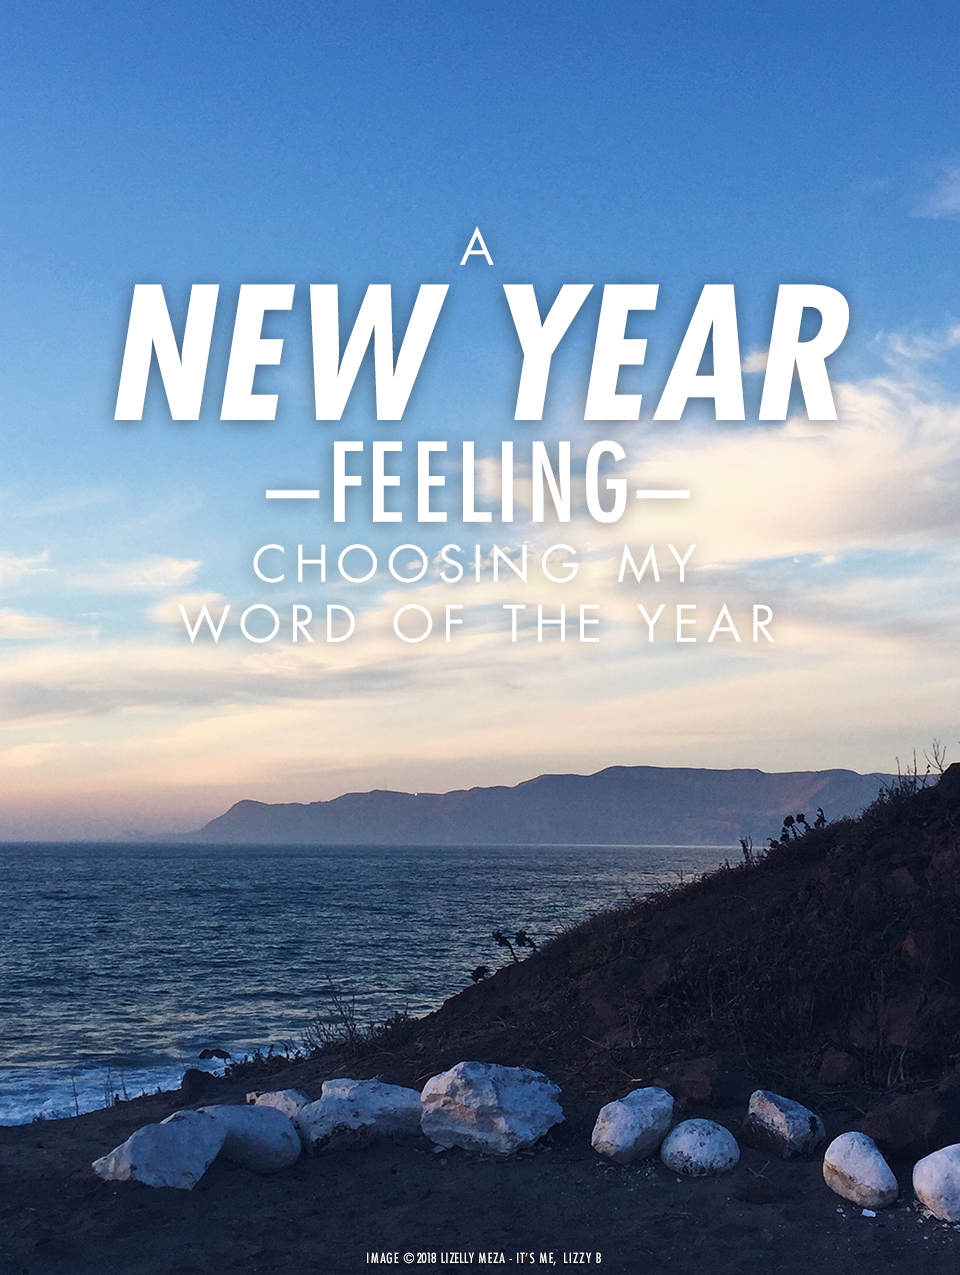 A New Year Feeling—Choosing My Word of the Year// It's Me, Lizzy B - Musings on Life, Business, & The Pursuit of Curiosity // Personal blog of Lizelly Meza